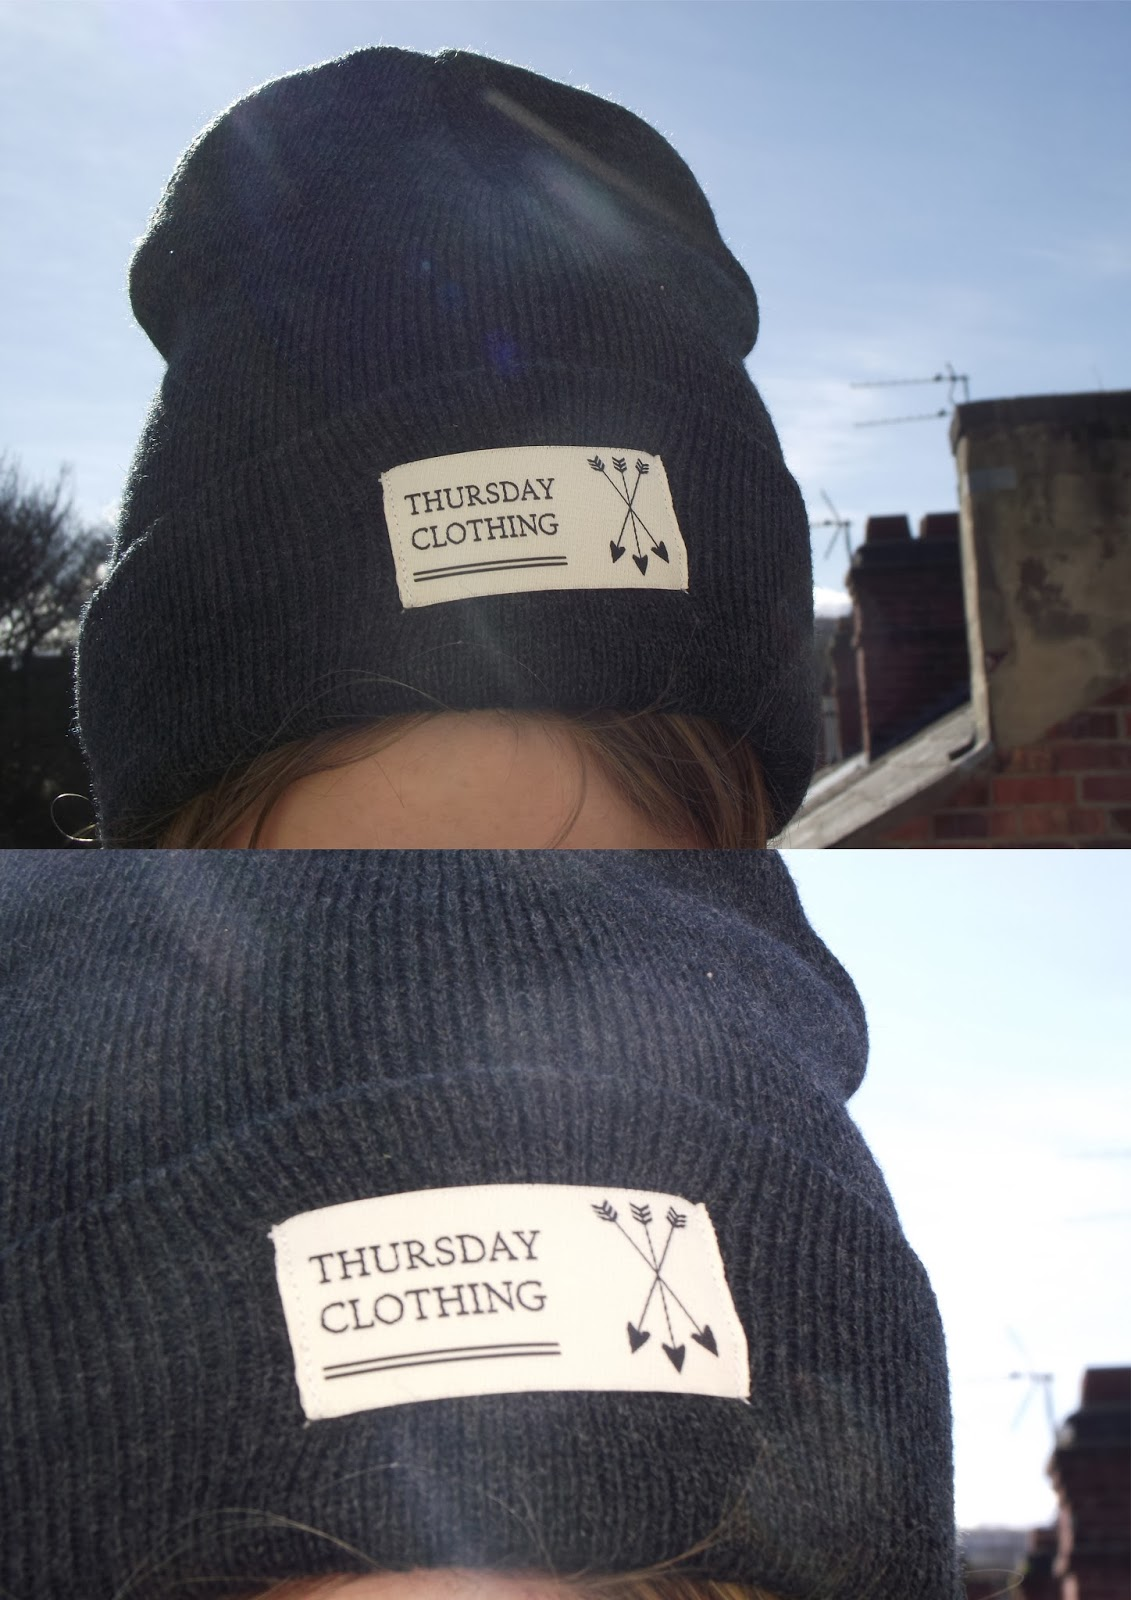 Lrsmth Fashion Thursday Clothing Beanie feat New Look & Primark